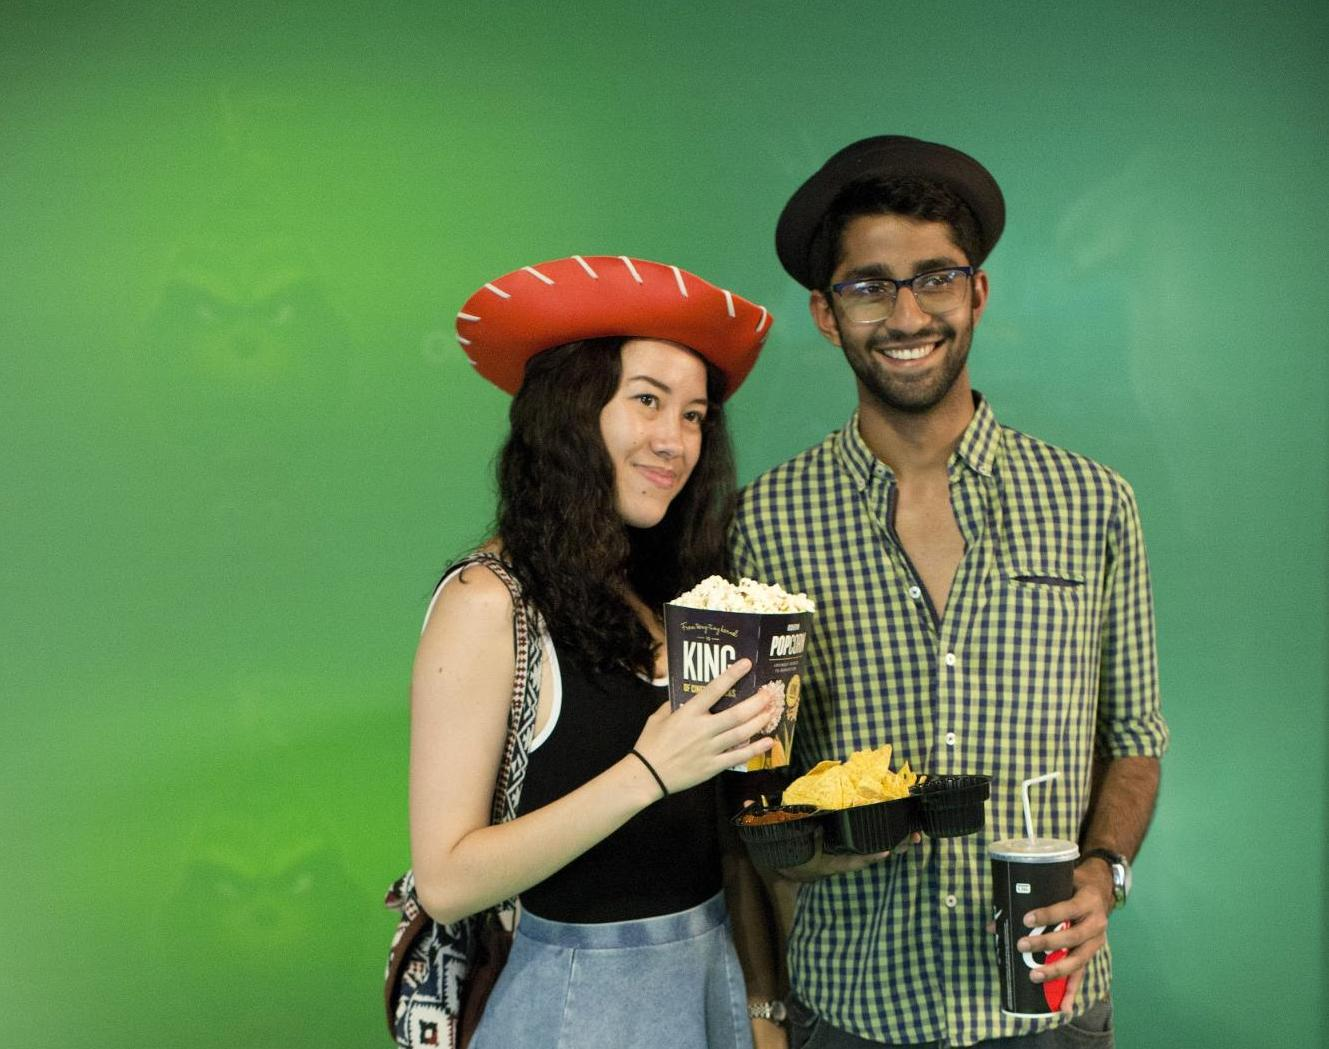 A couple posing for a Toy Story photo.